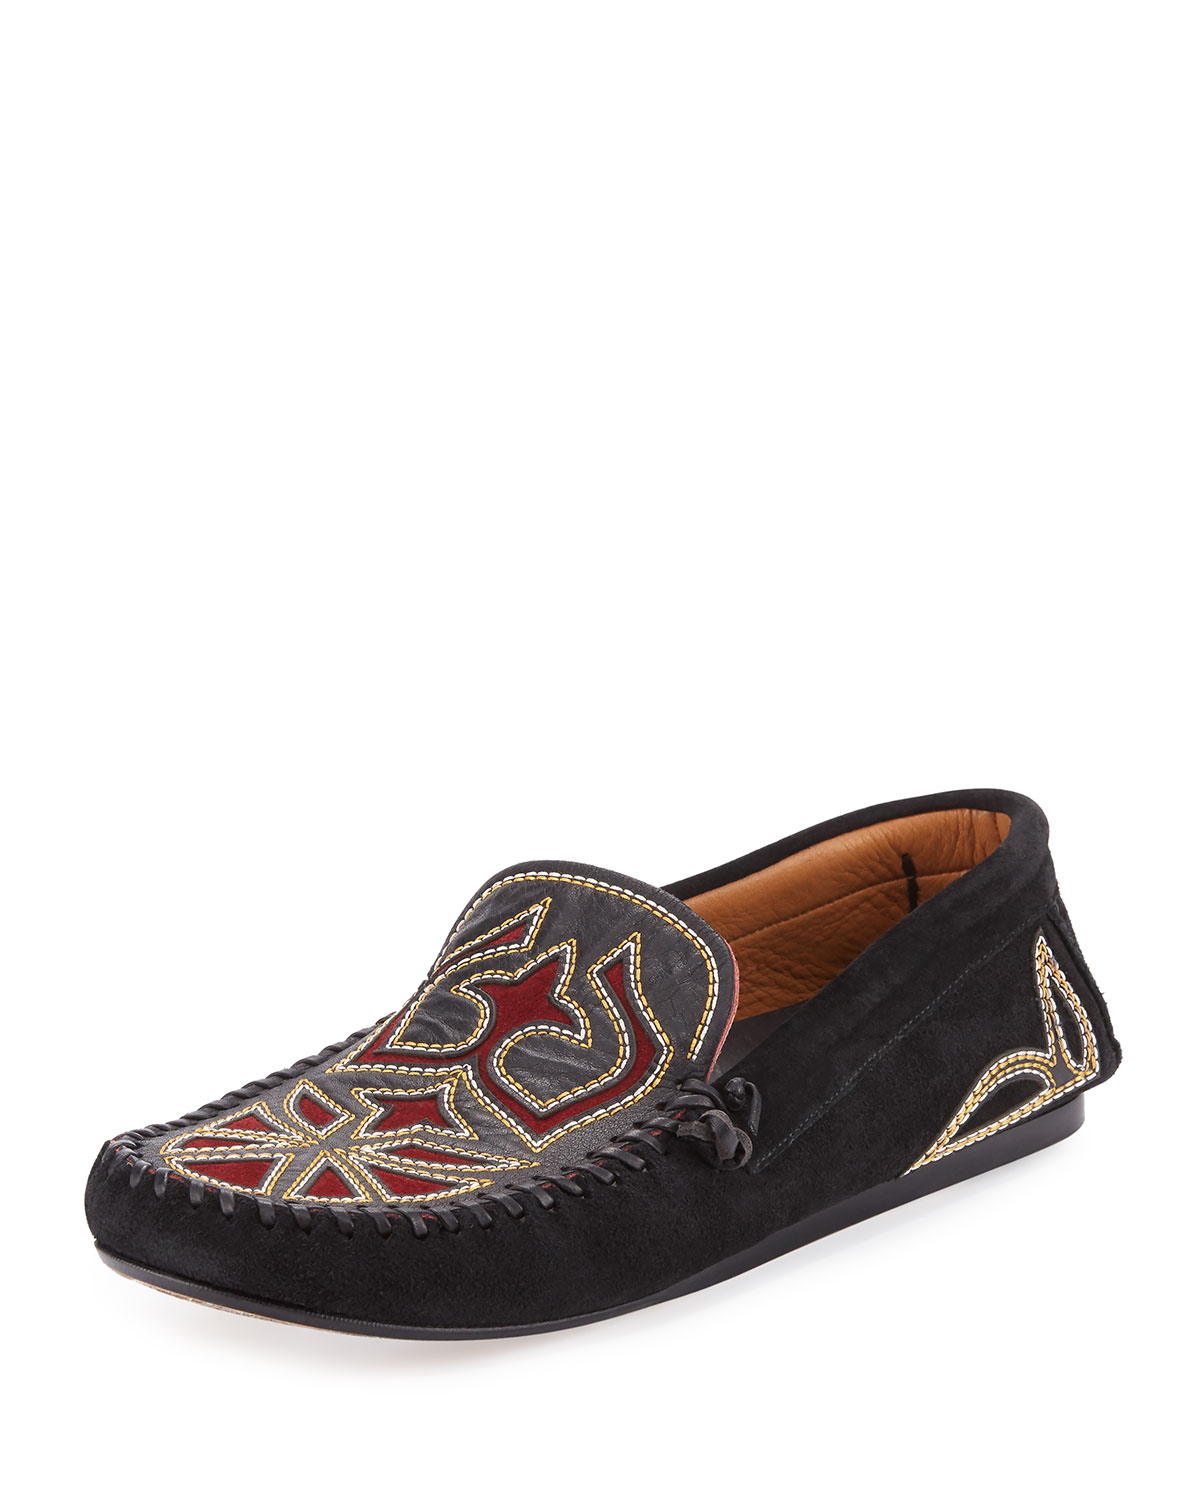 Genuine Isabel Marant Finha loafers Popular Cheap Price ZiU4EDb